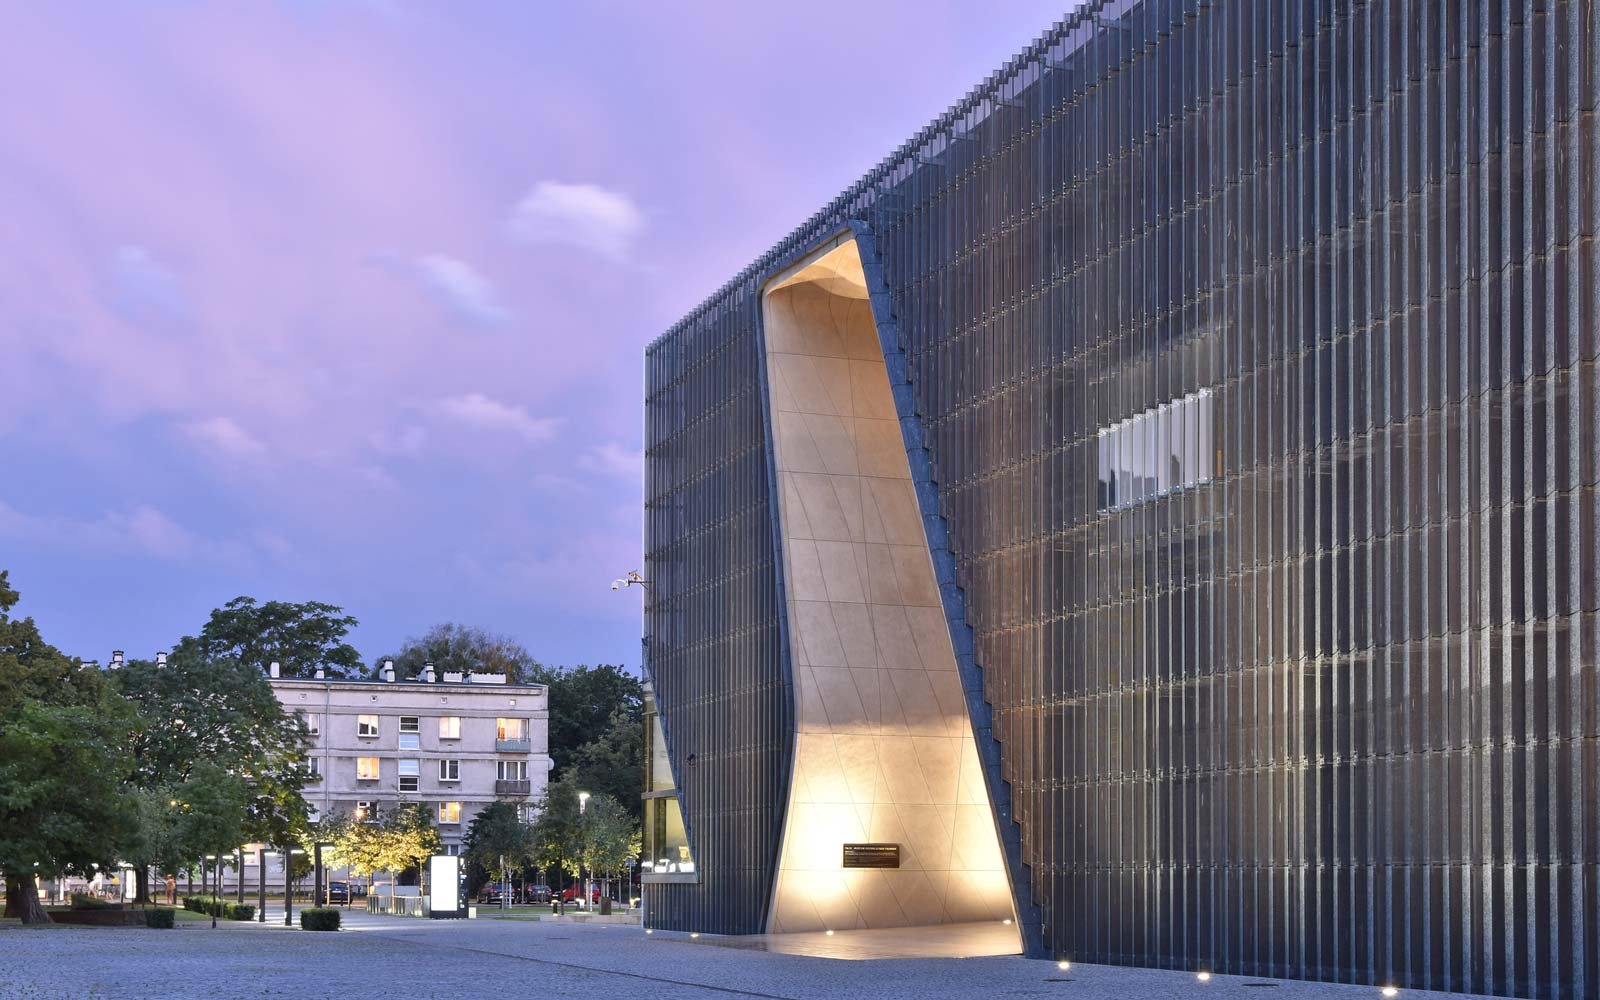 Museums of the History of Polish Jews